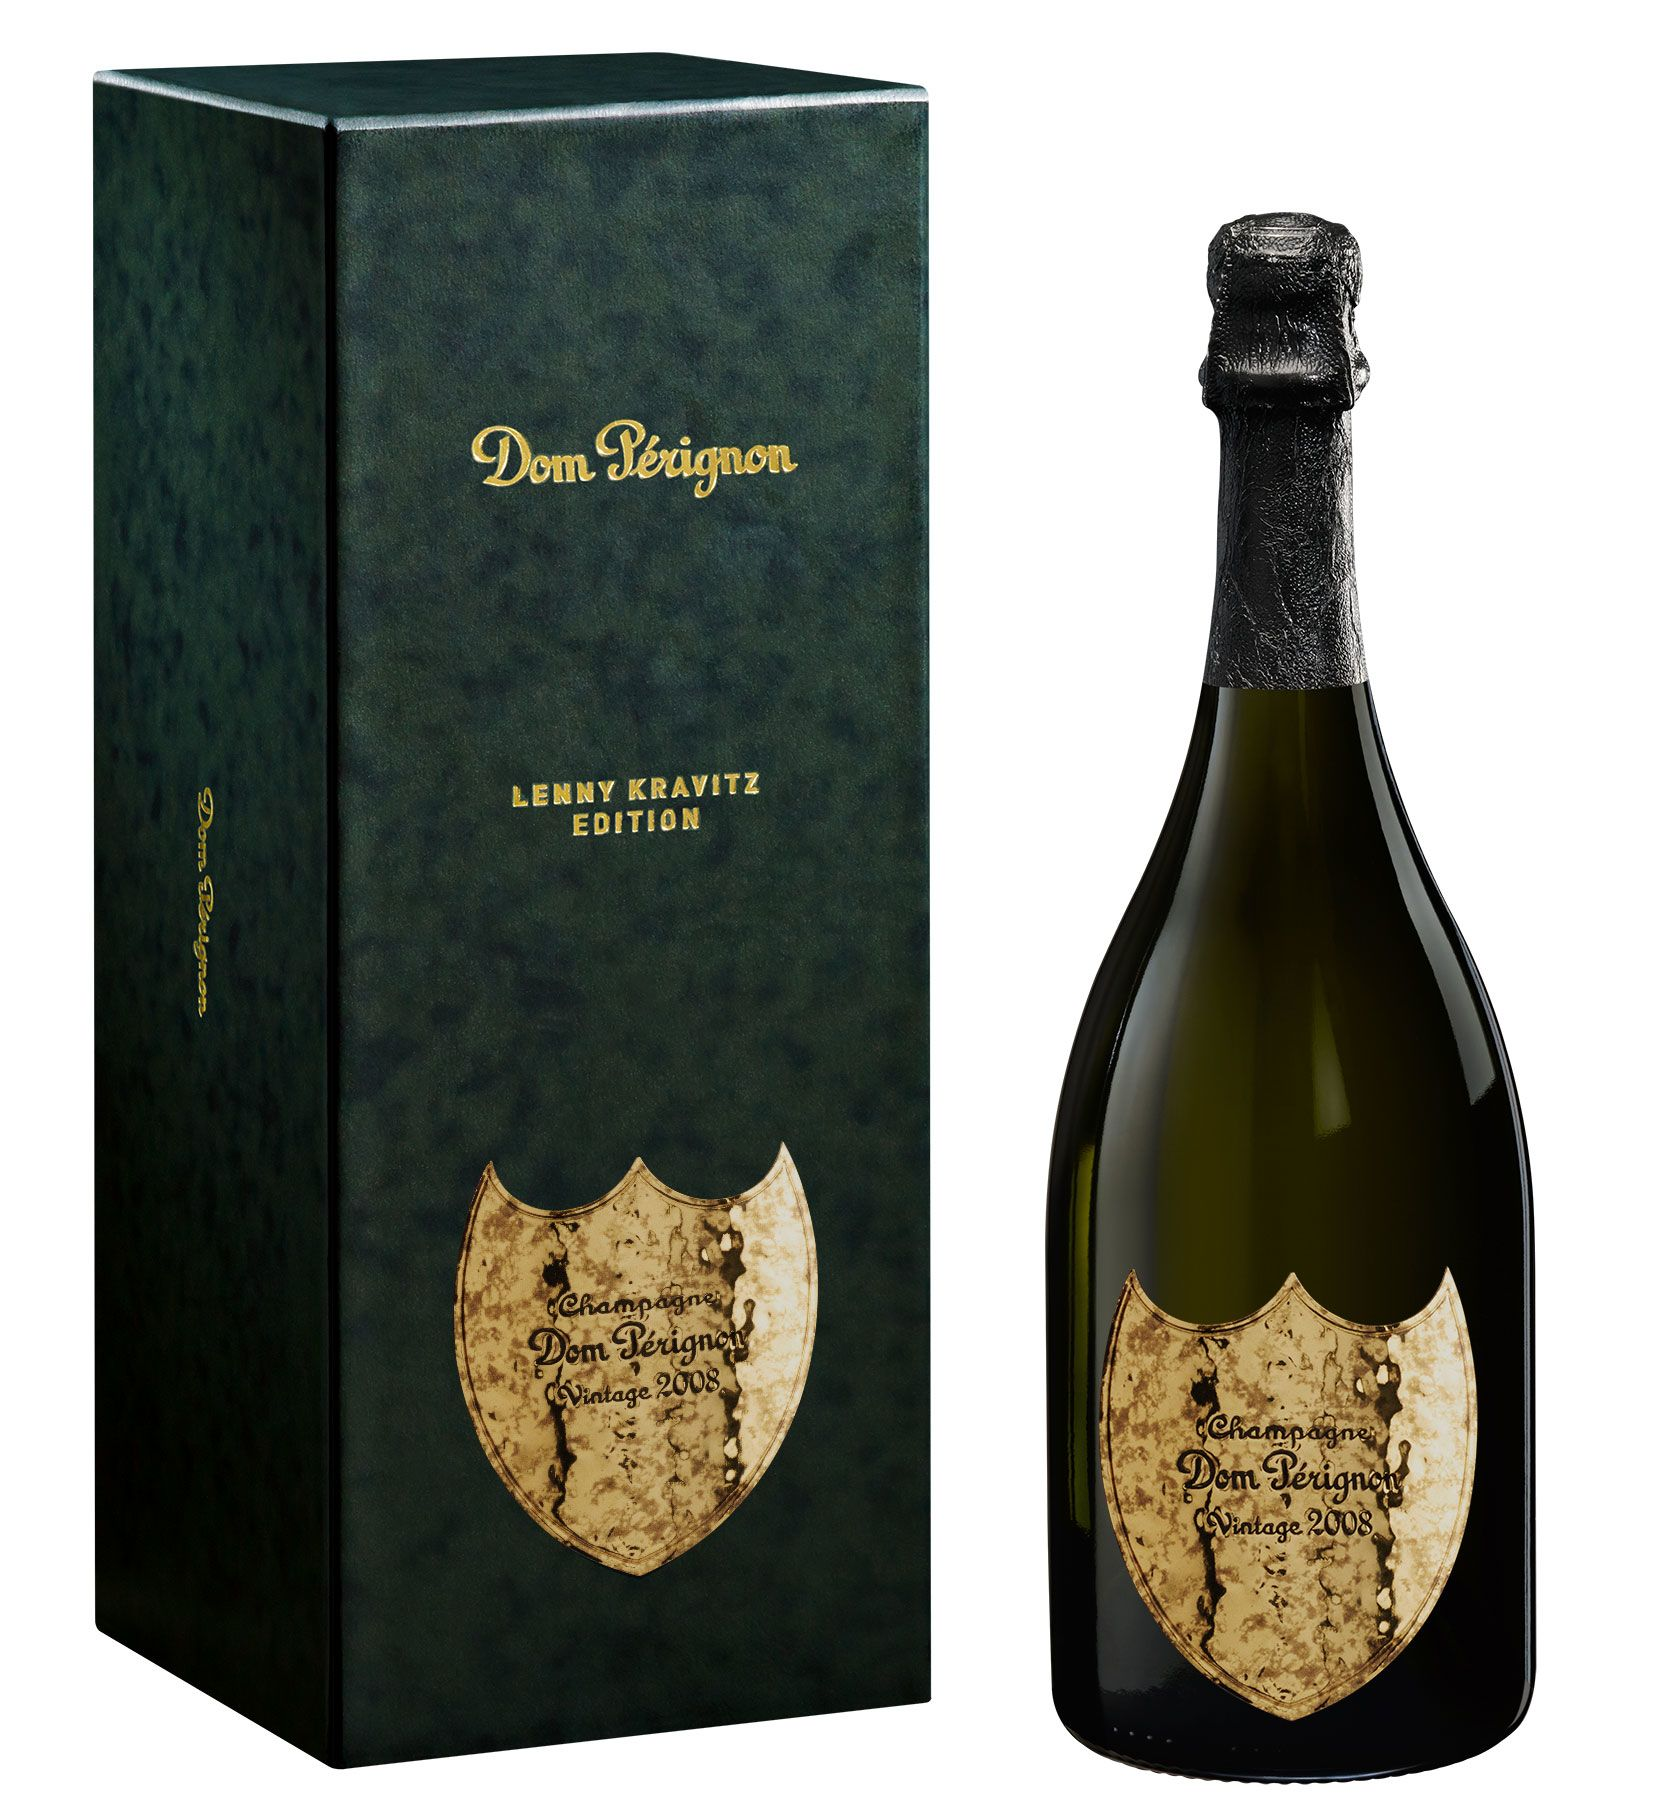 Dom Perignon Vintage Lenny Kravitz Limited Edition with Gift Box 2008  Gift Product Image